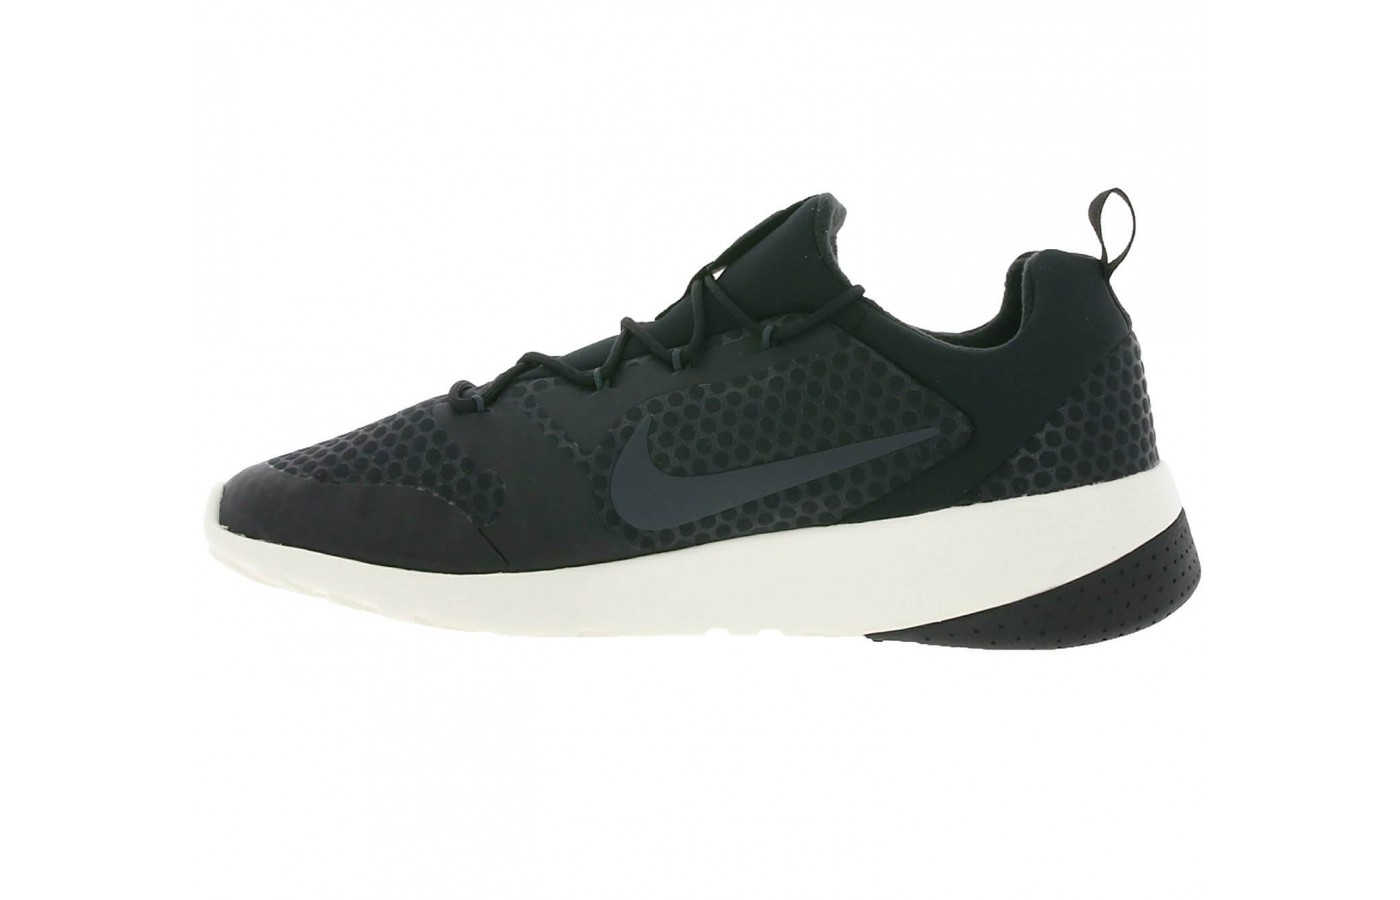 7a6f8440443b7 ... The closest approximation for what the Nike CK Racer s drop is would be  around 9 mm ...